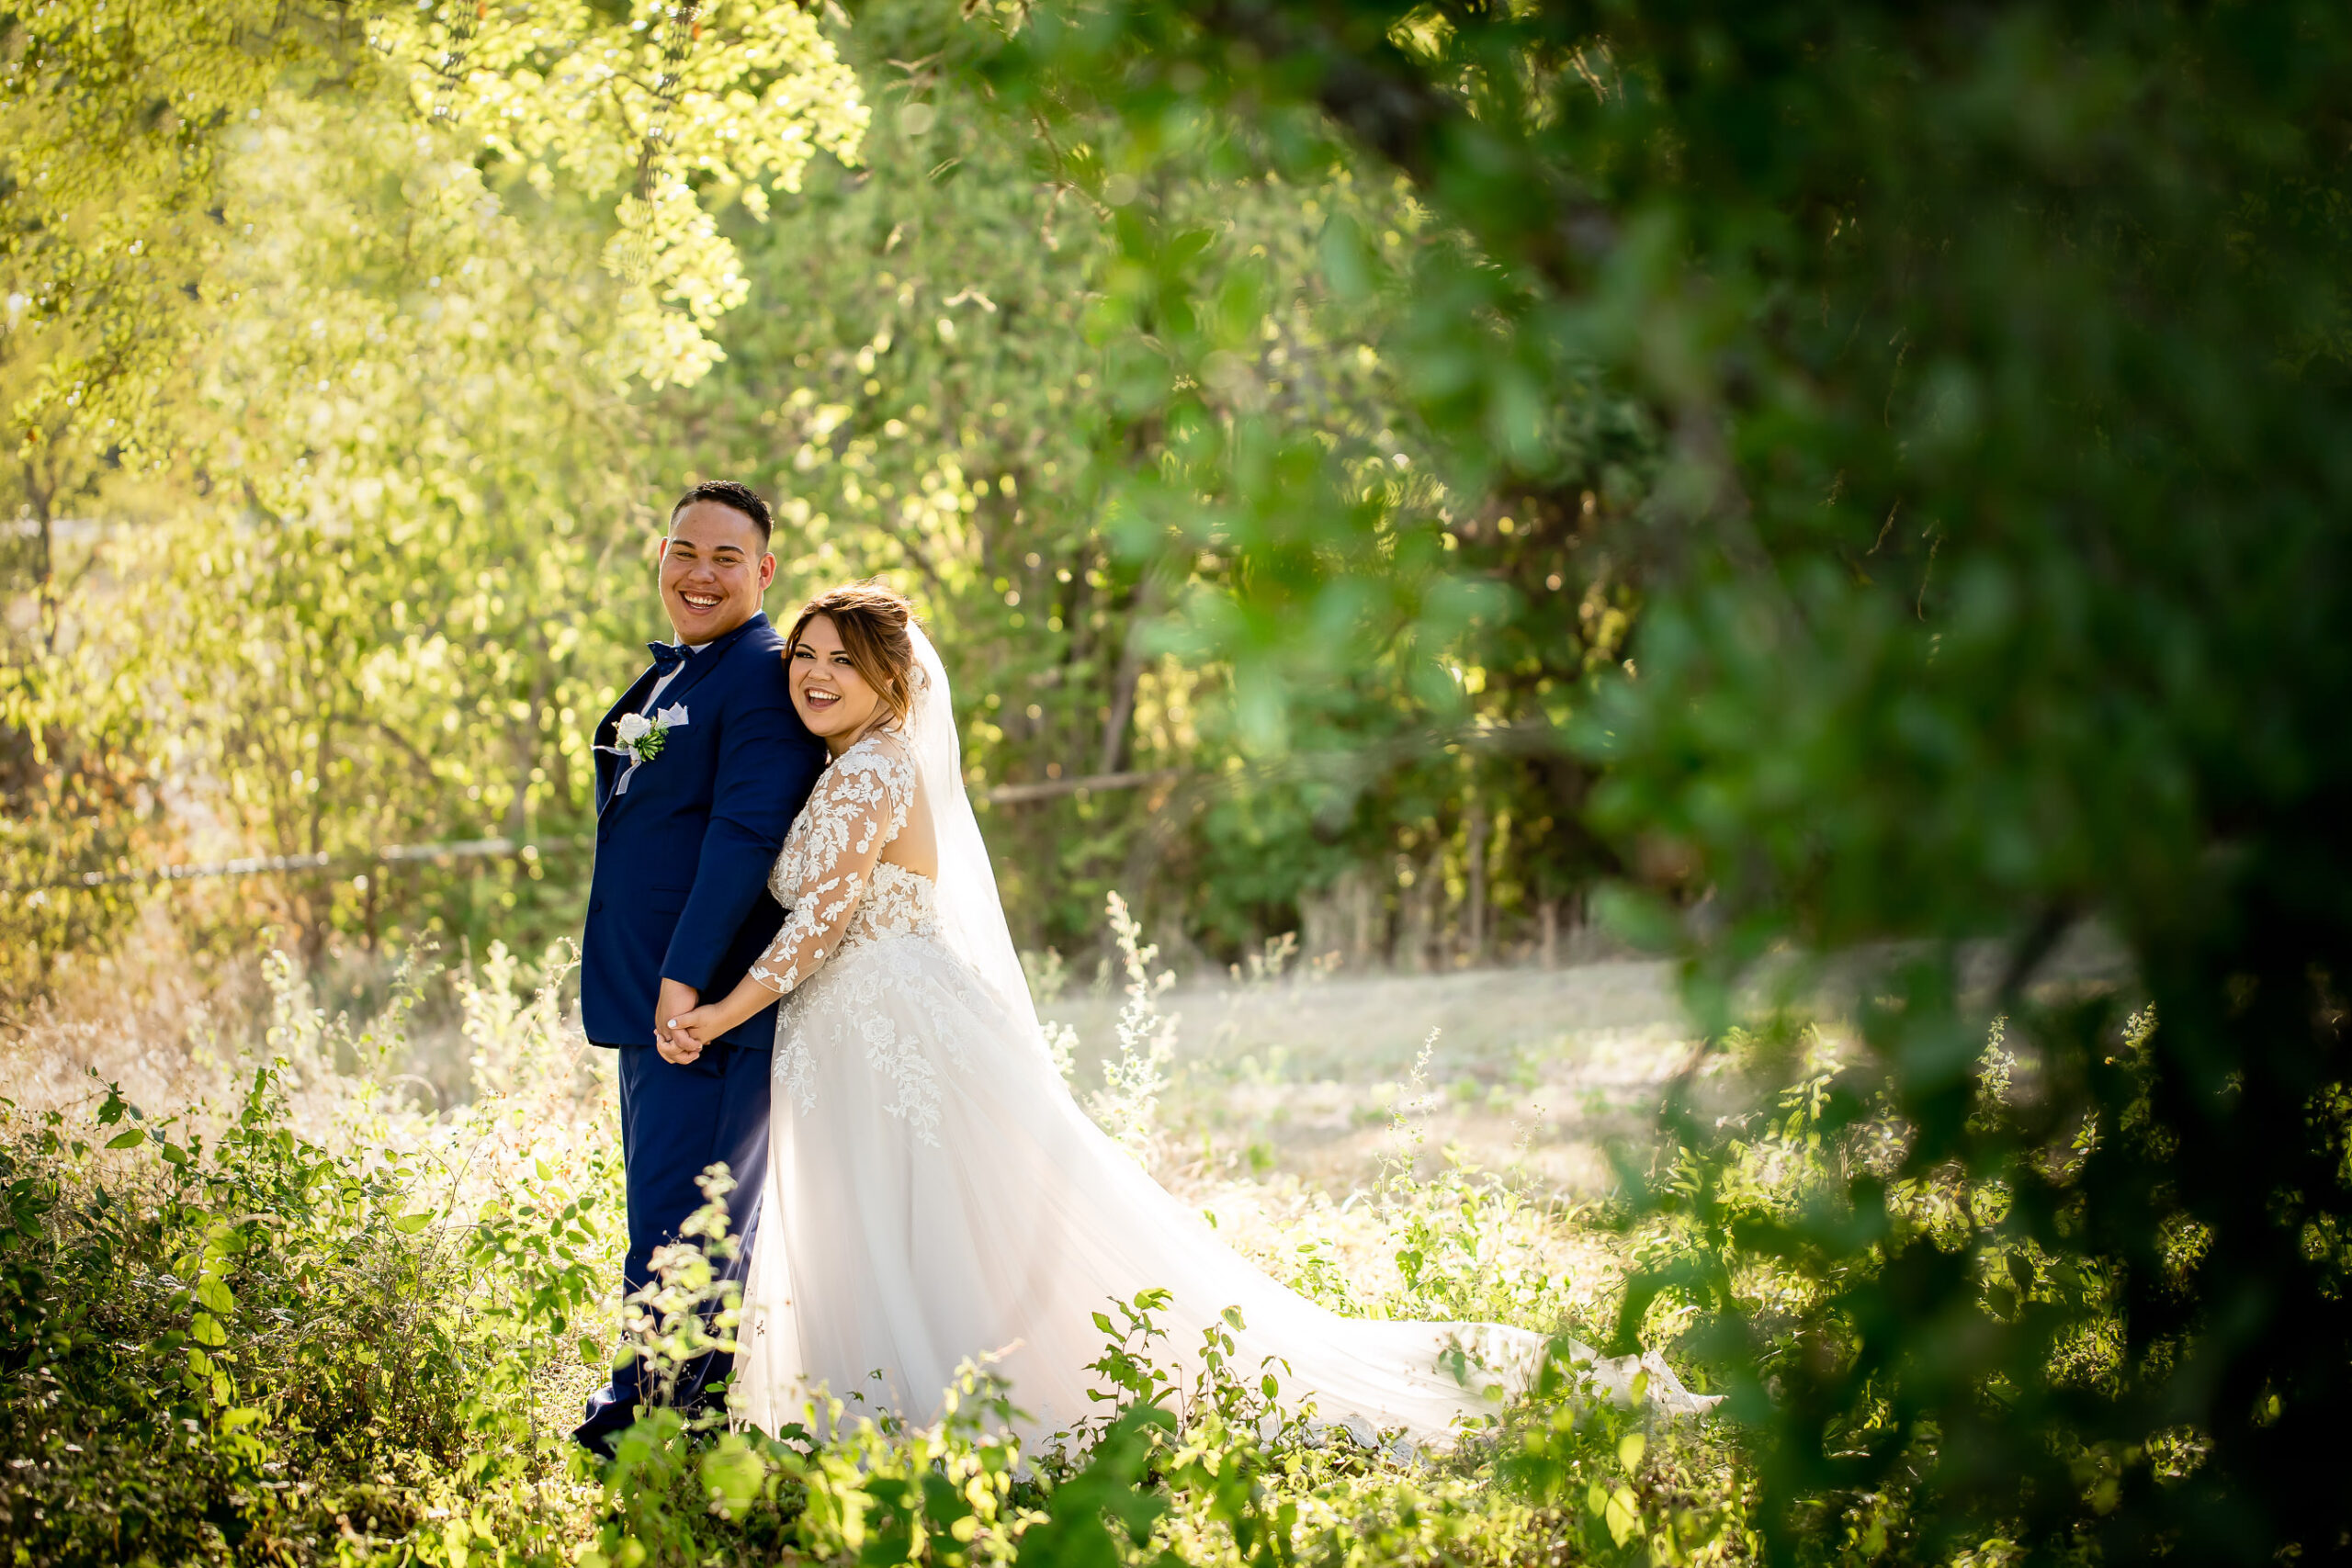 Wedding in Belton, Texas